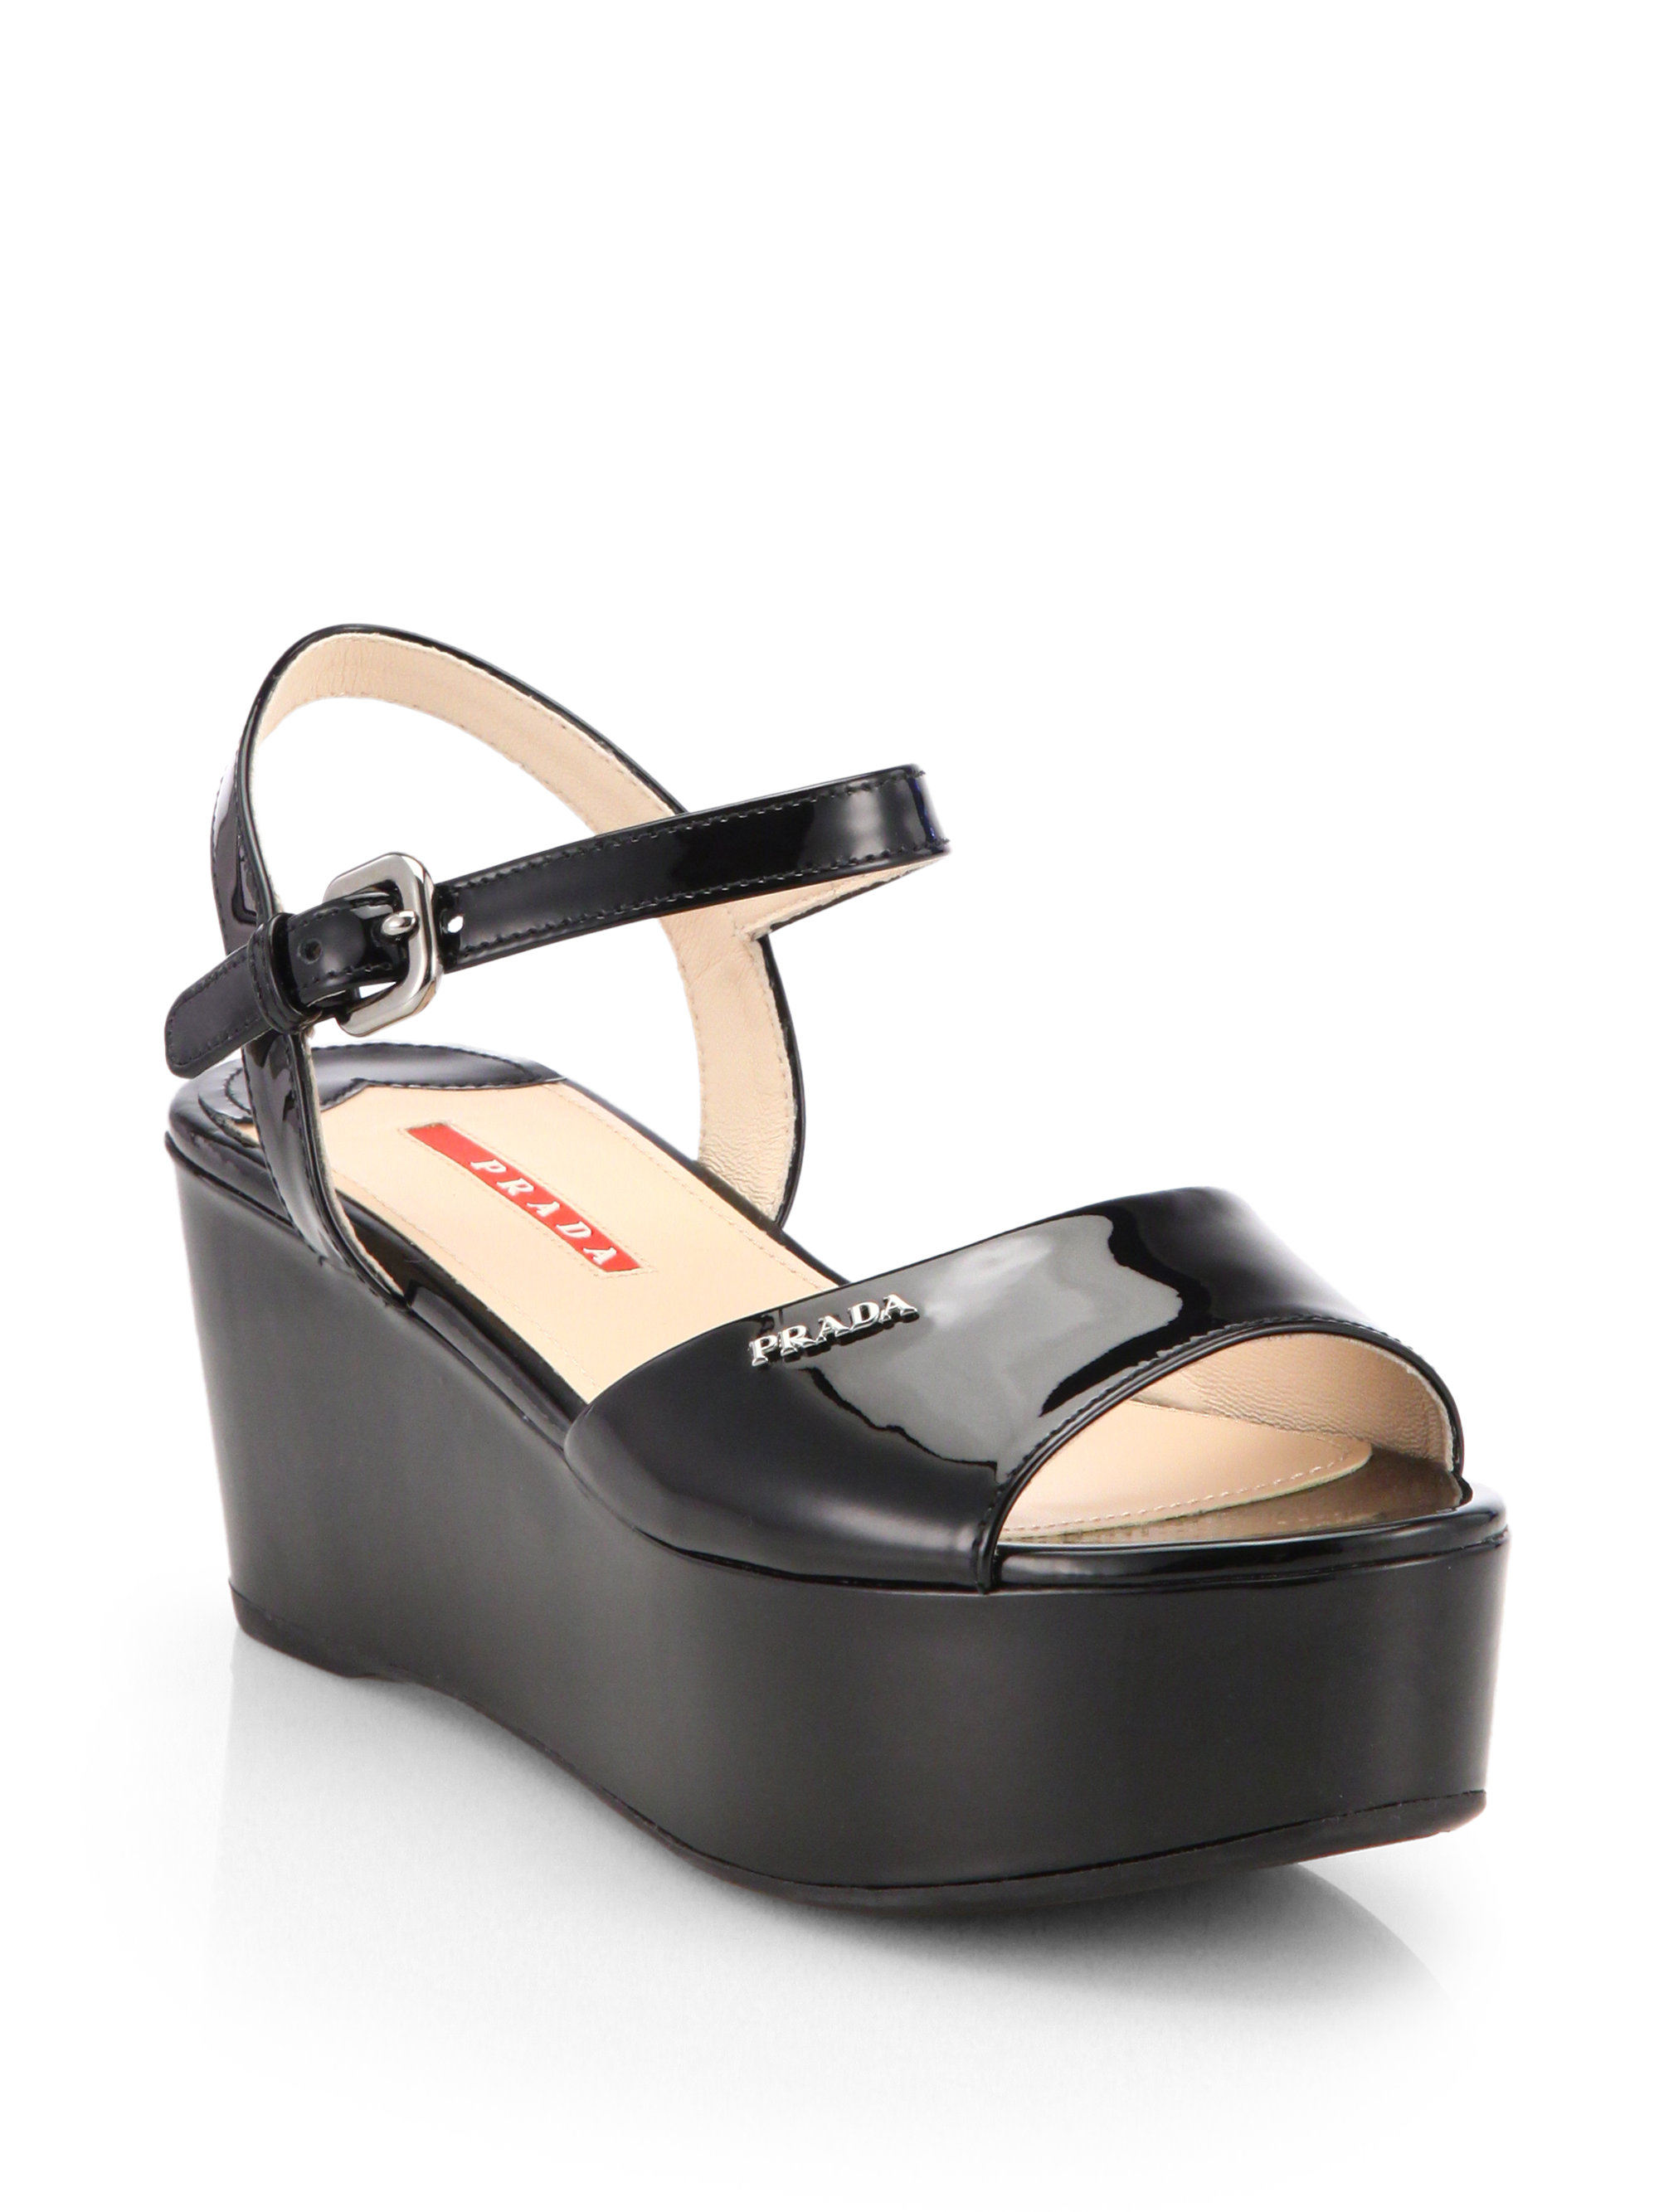 buy cheap lowest price buy online Prada Patent Platform Wedges nicekicks online 2015 new for sale view cheap online llZX6zaPn7